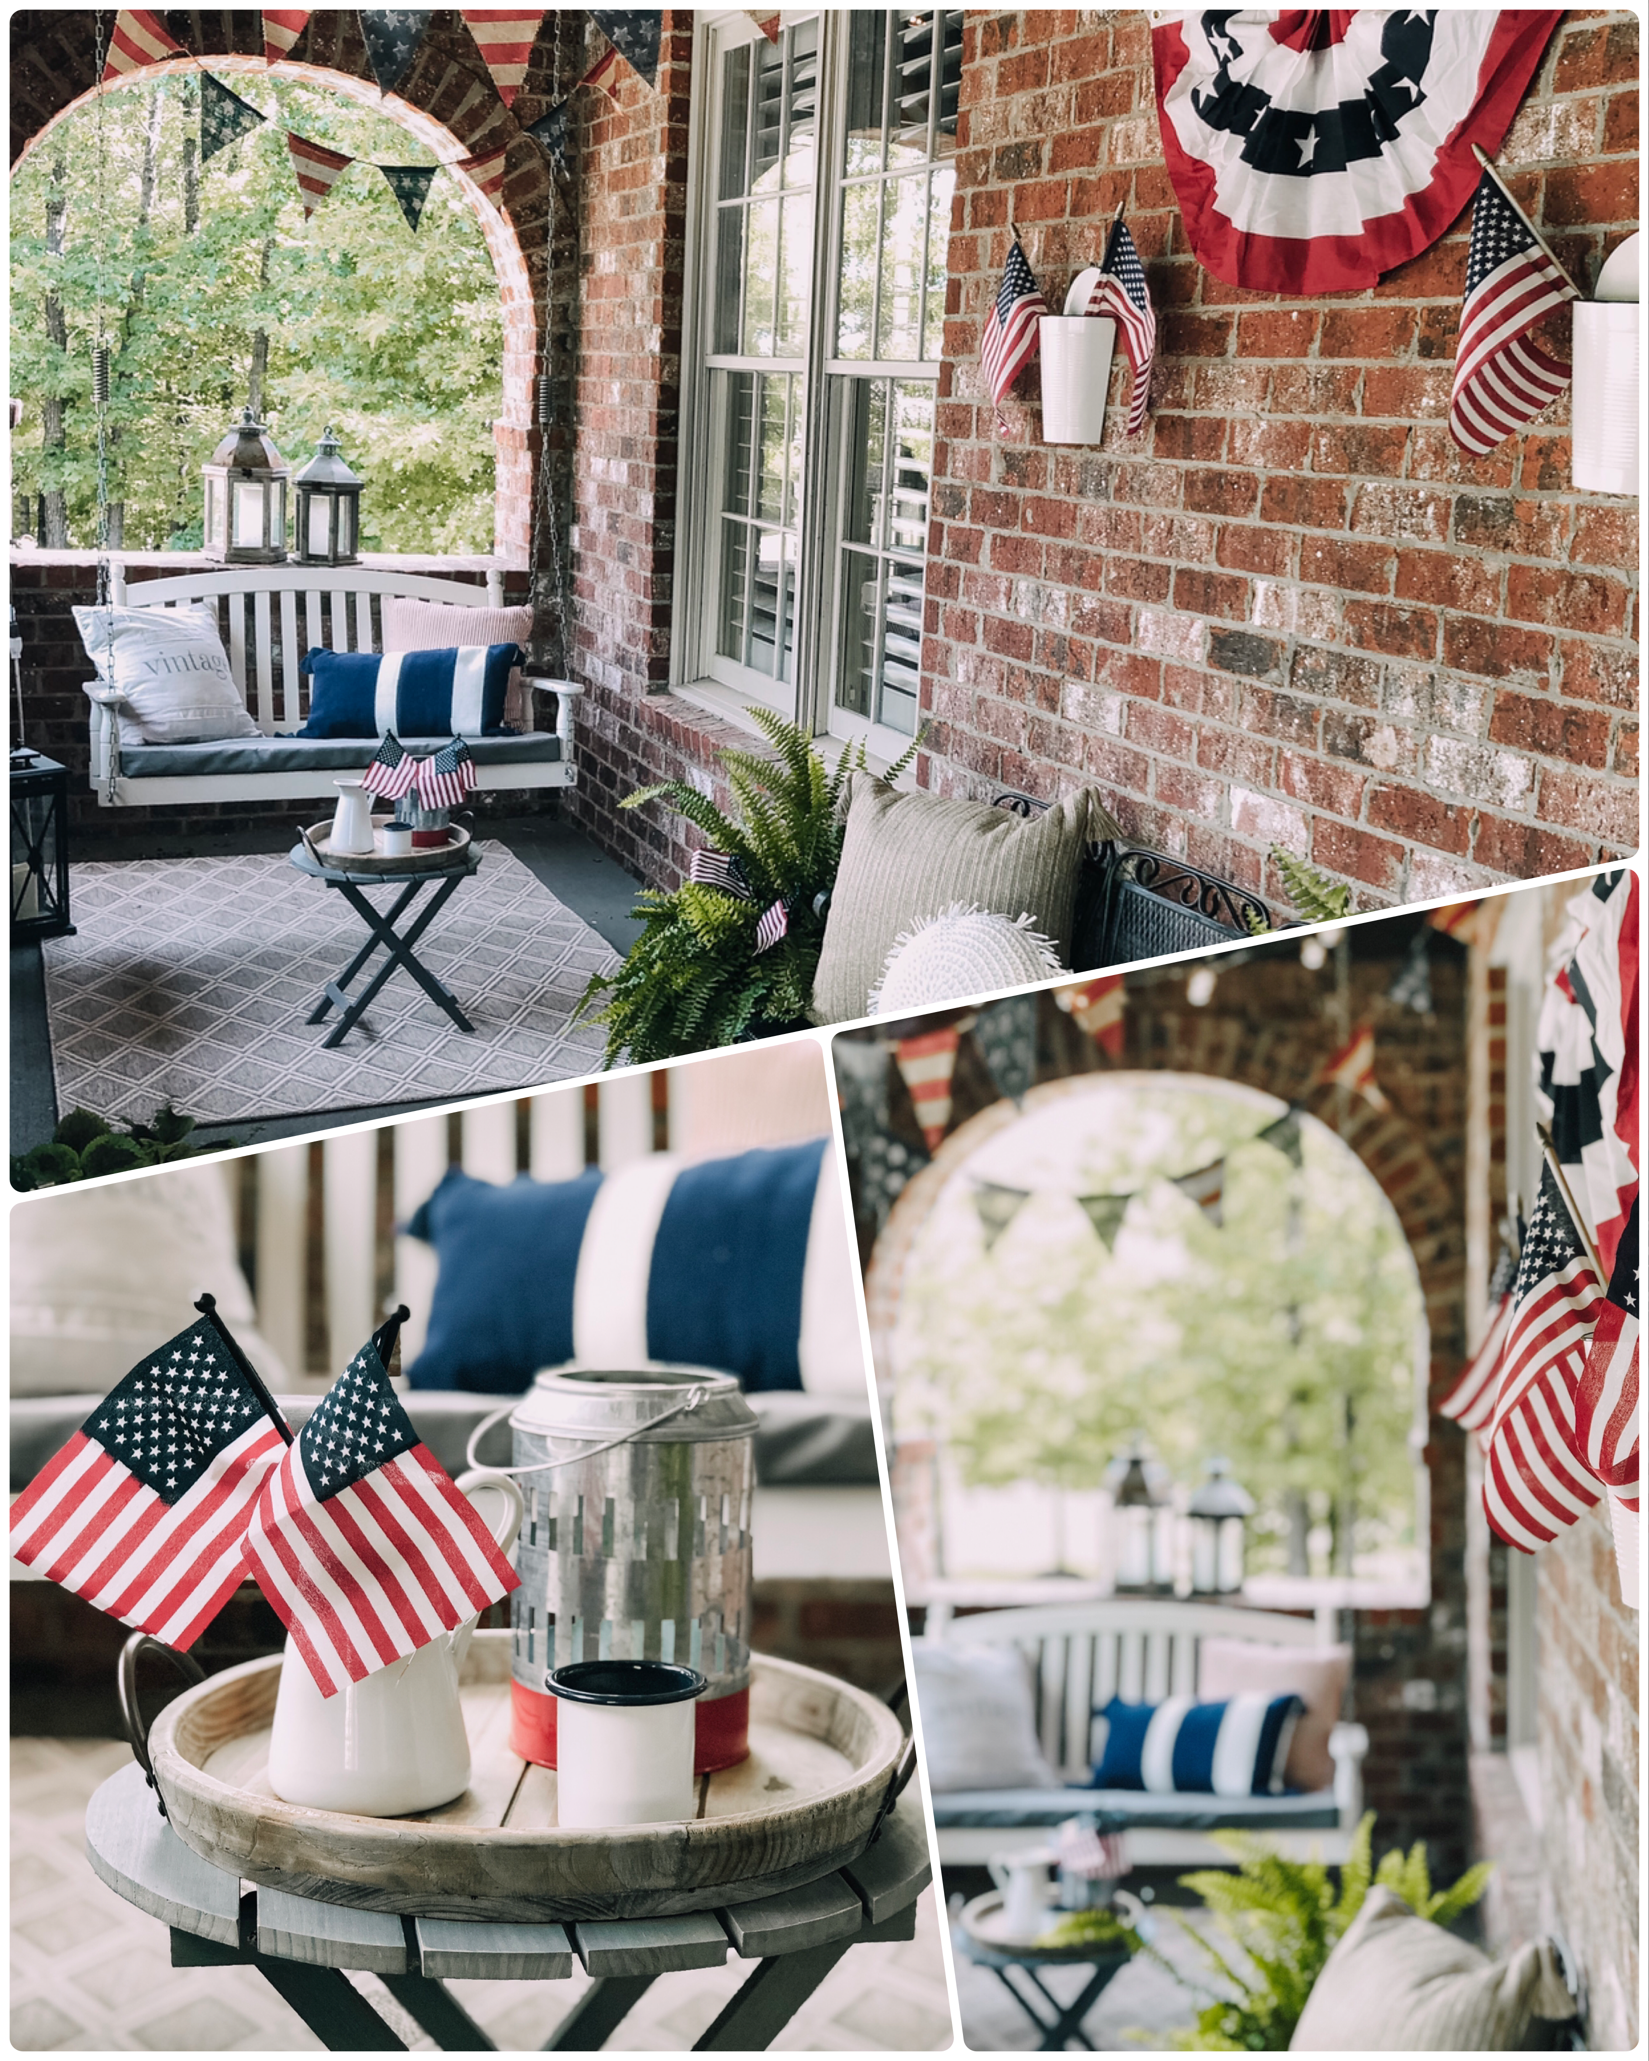 3easywaystoaddpatrioticdecortoyouroutdoorspace.PNG